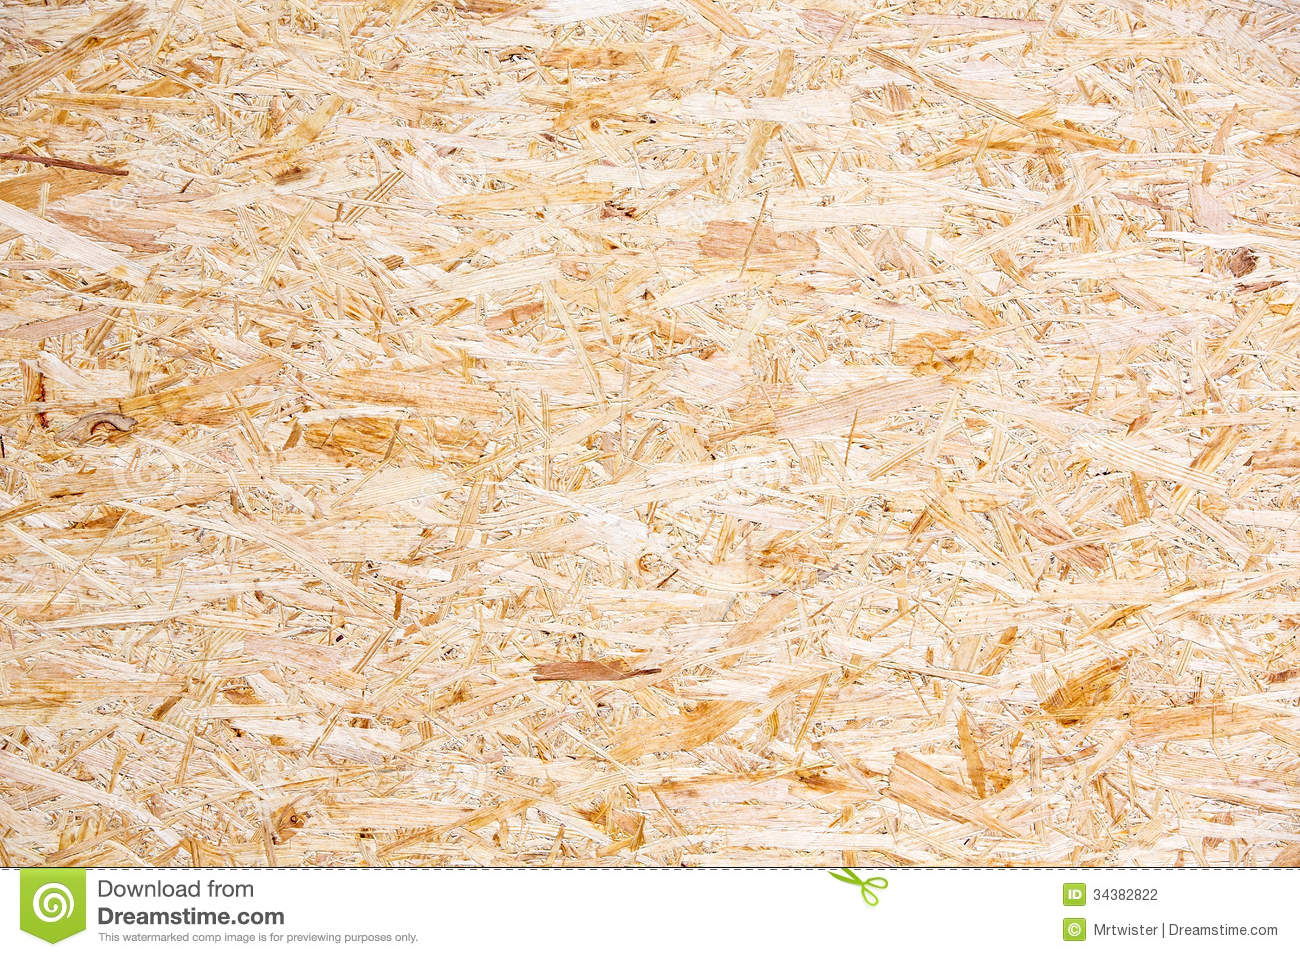 chipboard texture stock photography image 34382822. Black Bedroom Furniture Sets. Home Design Ideas